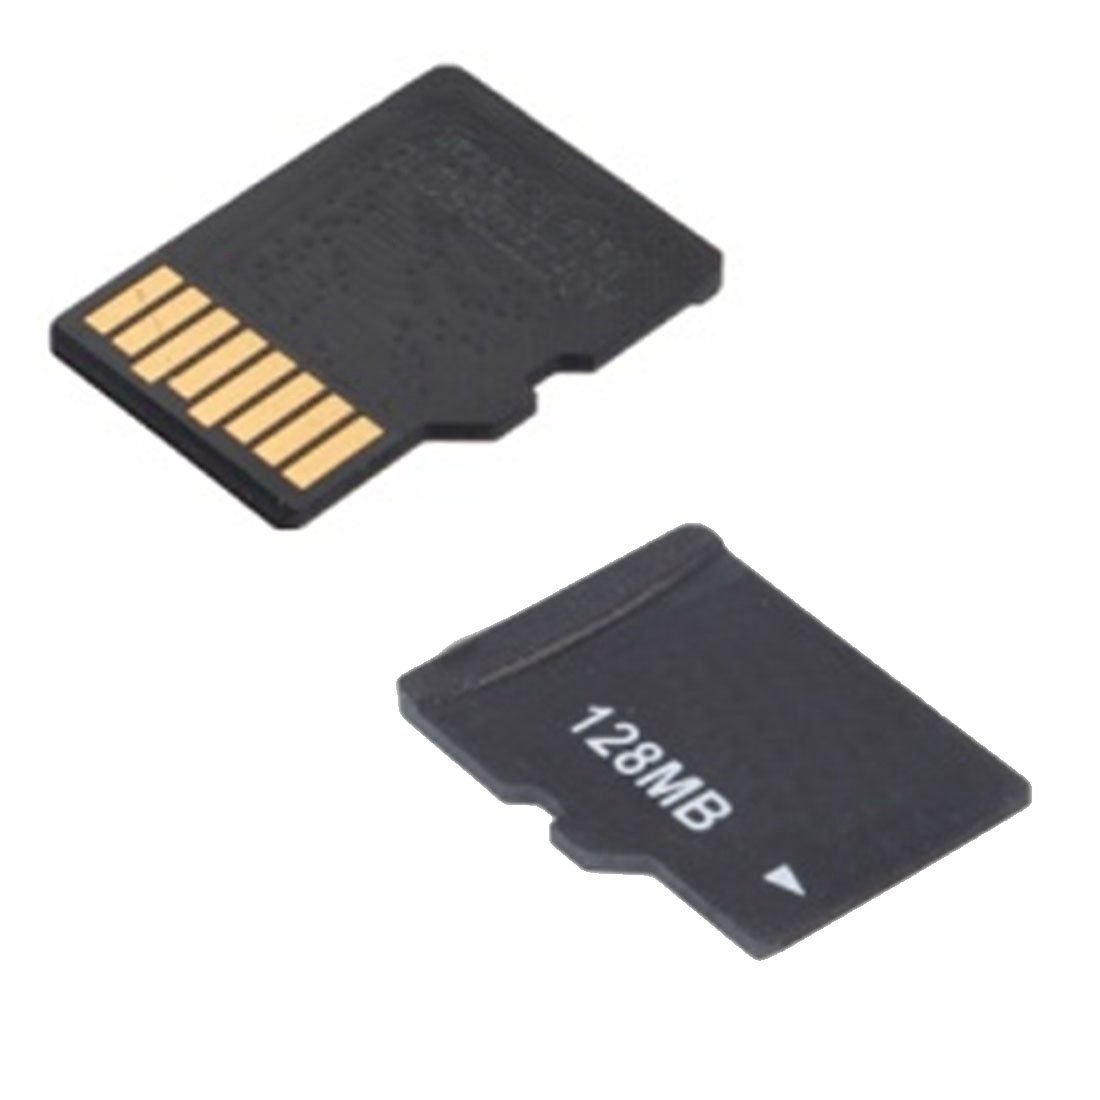 Memory Card - TOOGOO(R)128MB Micro SD TF Memory Card For Samsung Galaxy S5 S4 S3 Note 4 3 2 Android Tablet by TOOGOO(R) (Image #3)